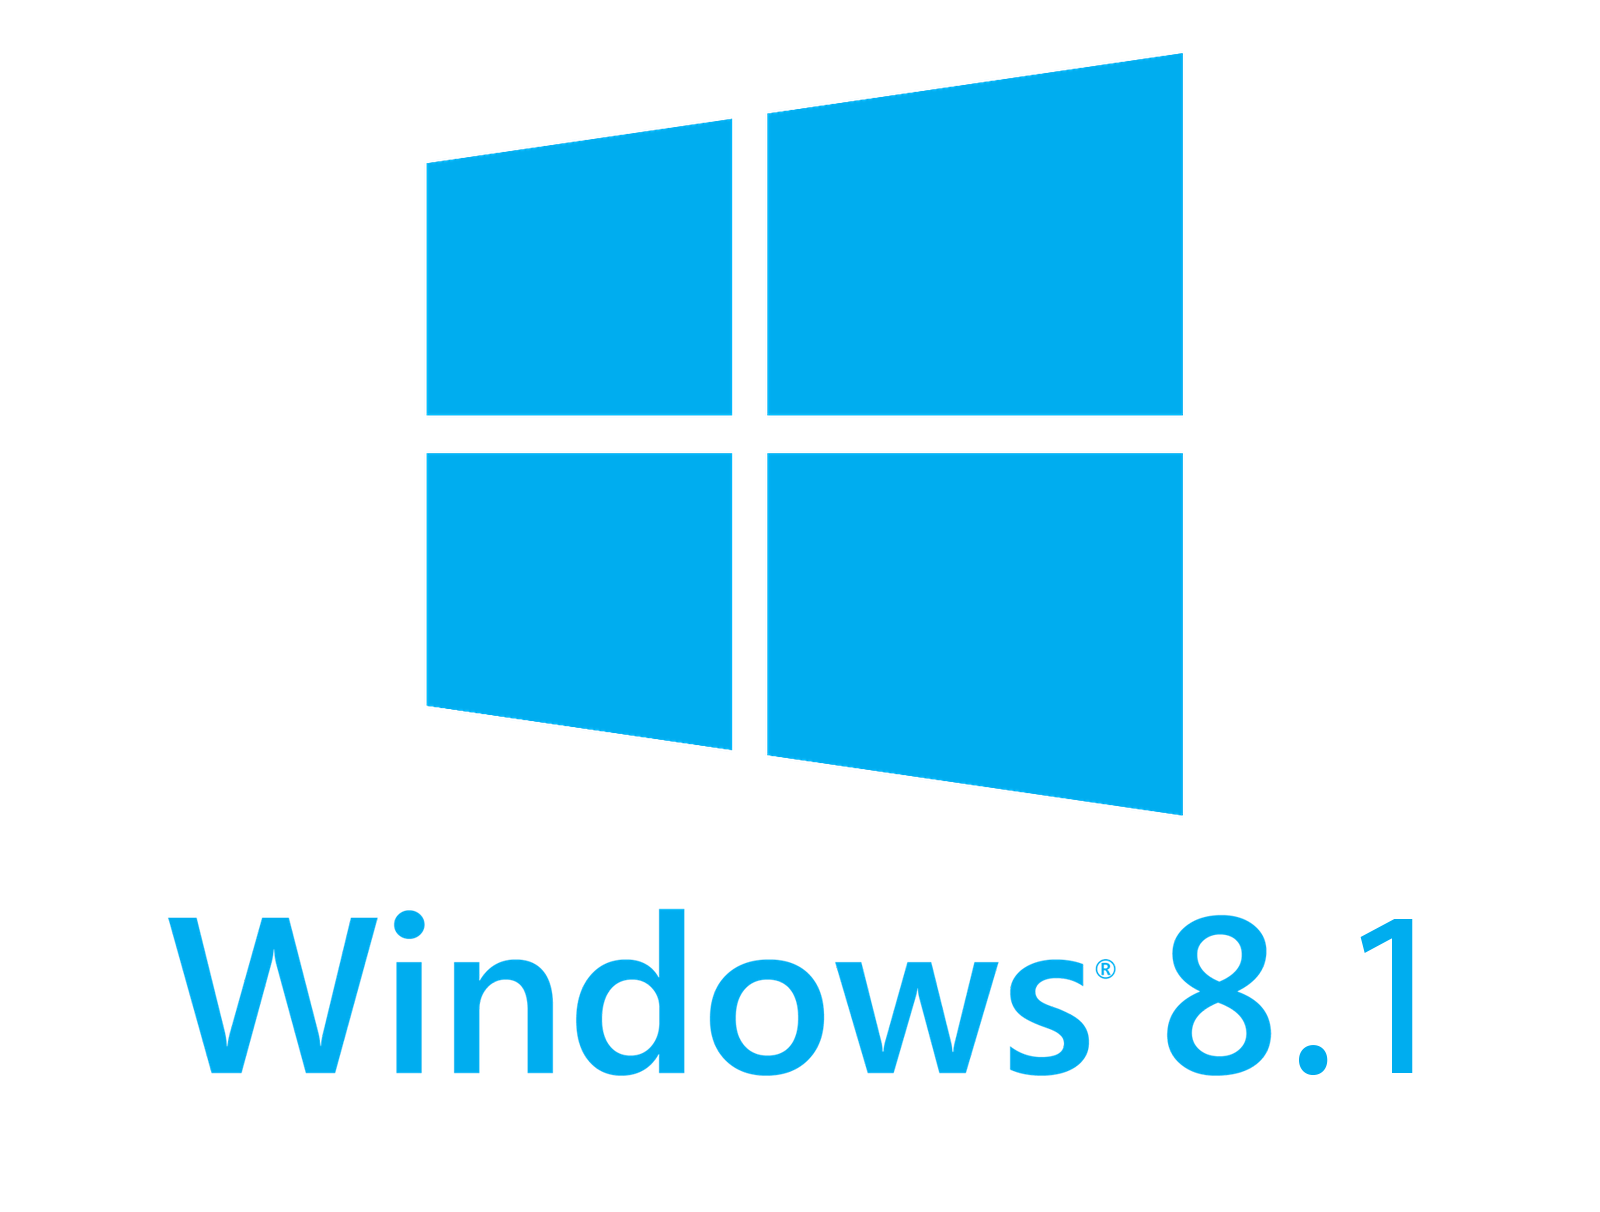 Windows 8 1 Logo Computers Amrel Com